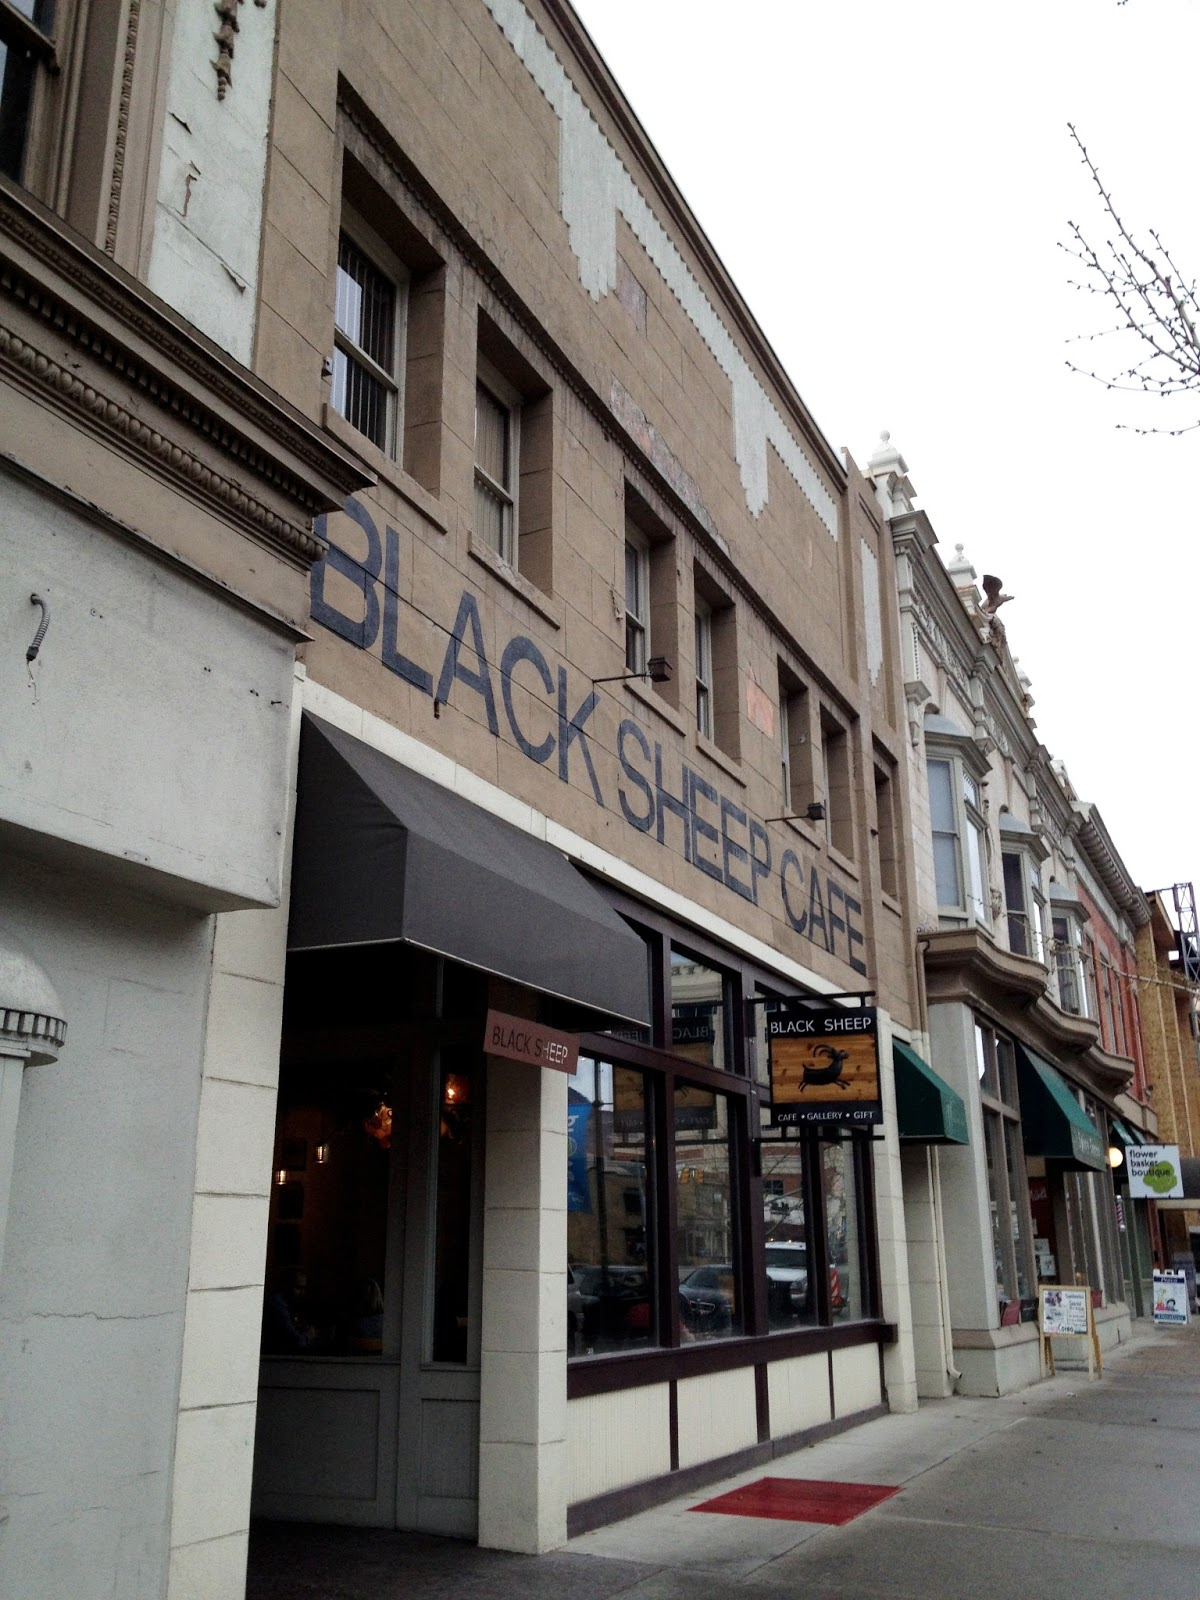 food blogger, food blog, food reviews, utah food reviews, black sheep cafe, gourmet food, provo eats, center street, provo, places to eat in provo